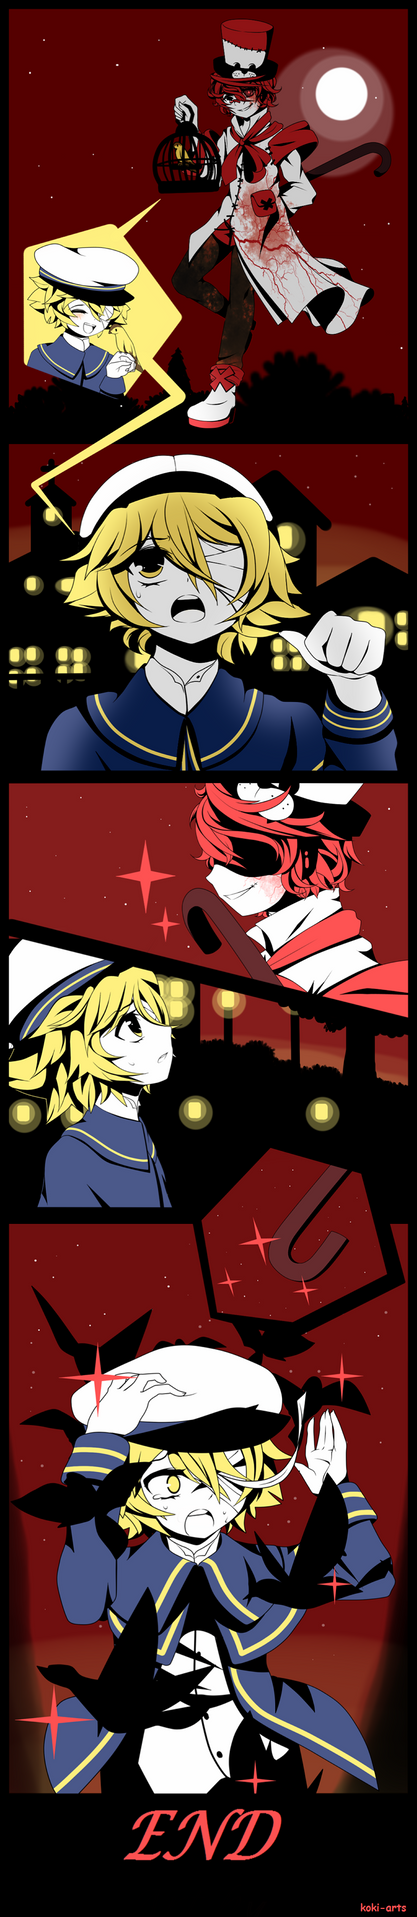 A tale of Fukase and Oliver... by Koki-arts